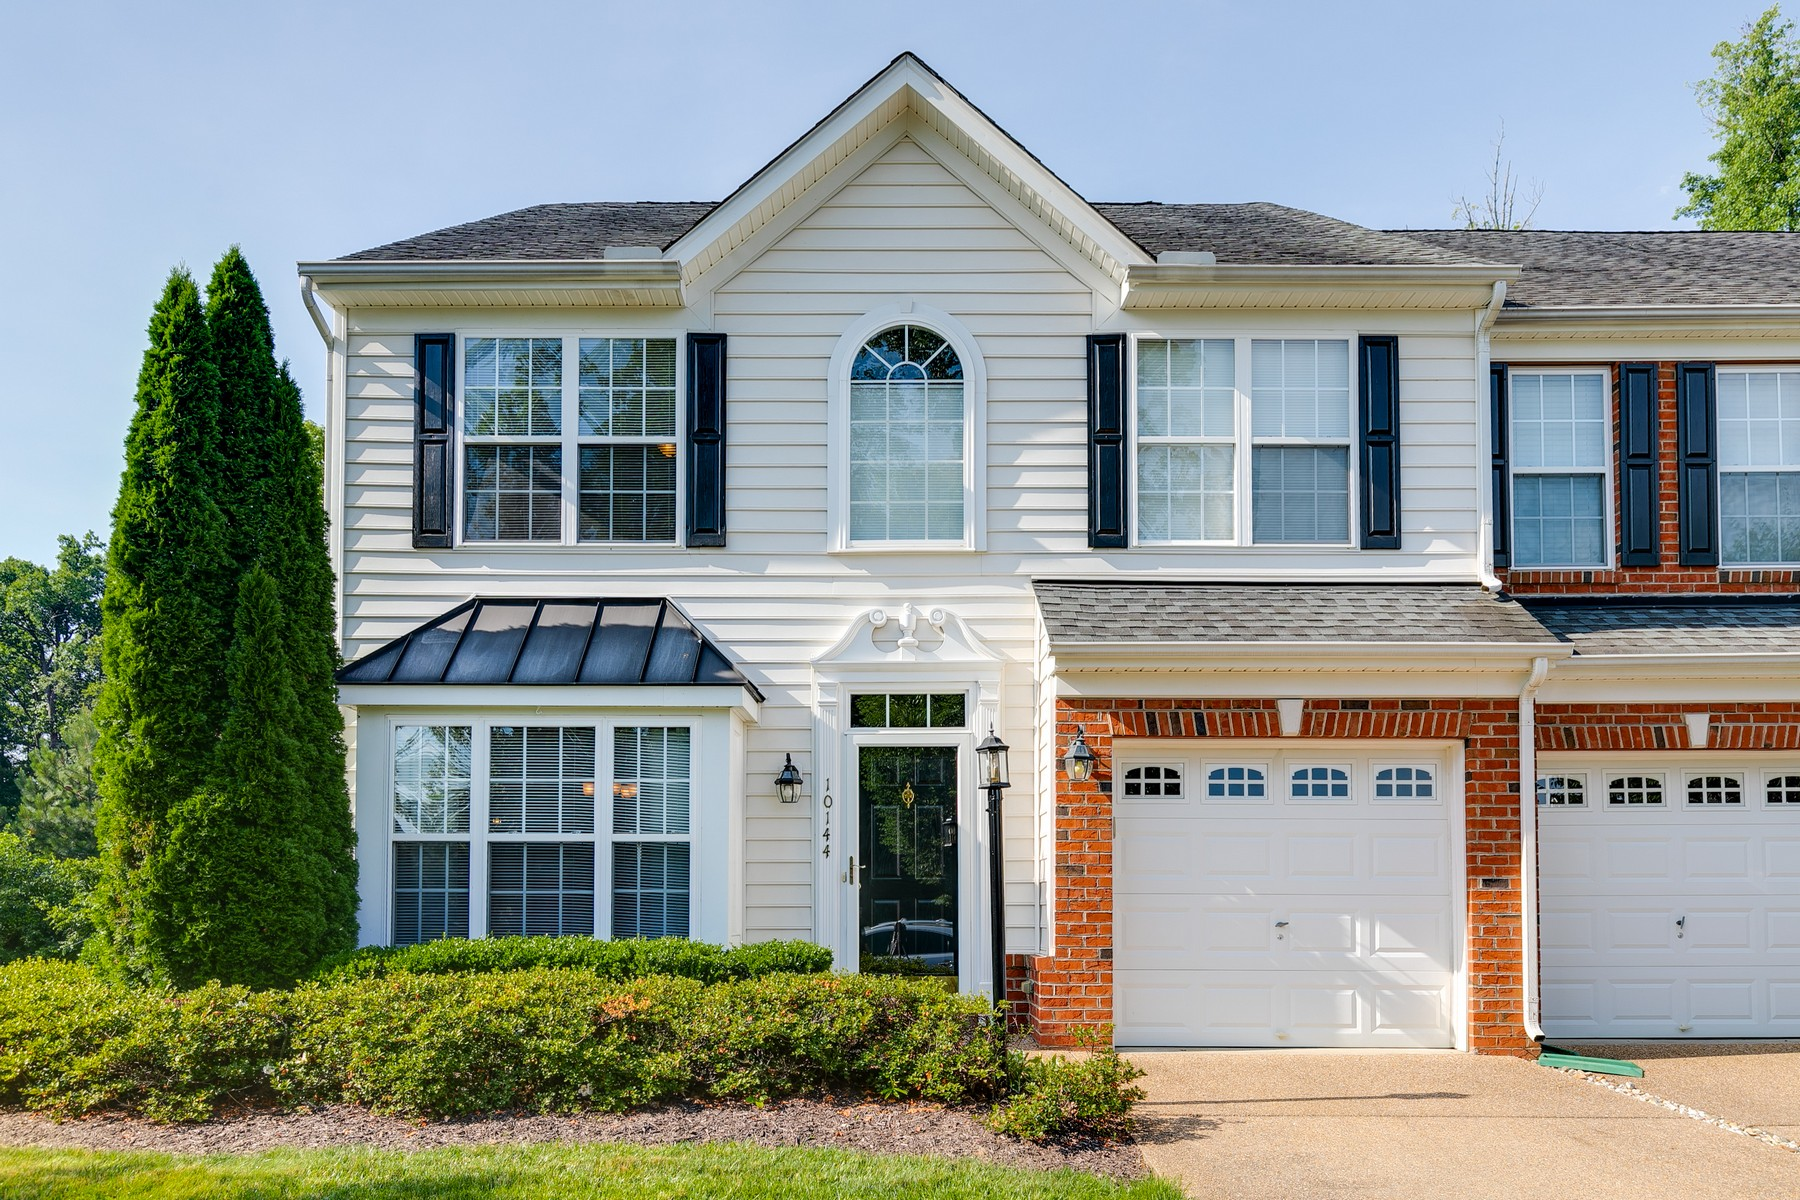 townhouses للـ Sale في Mechanicsville, Virginia 23116 United States